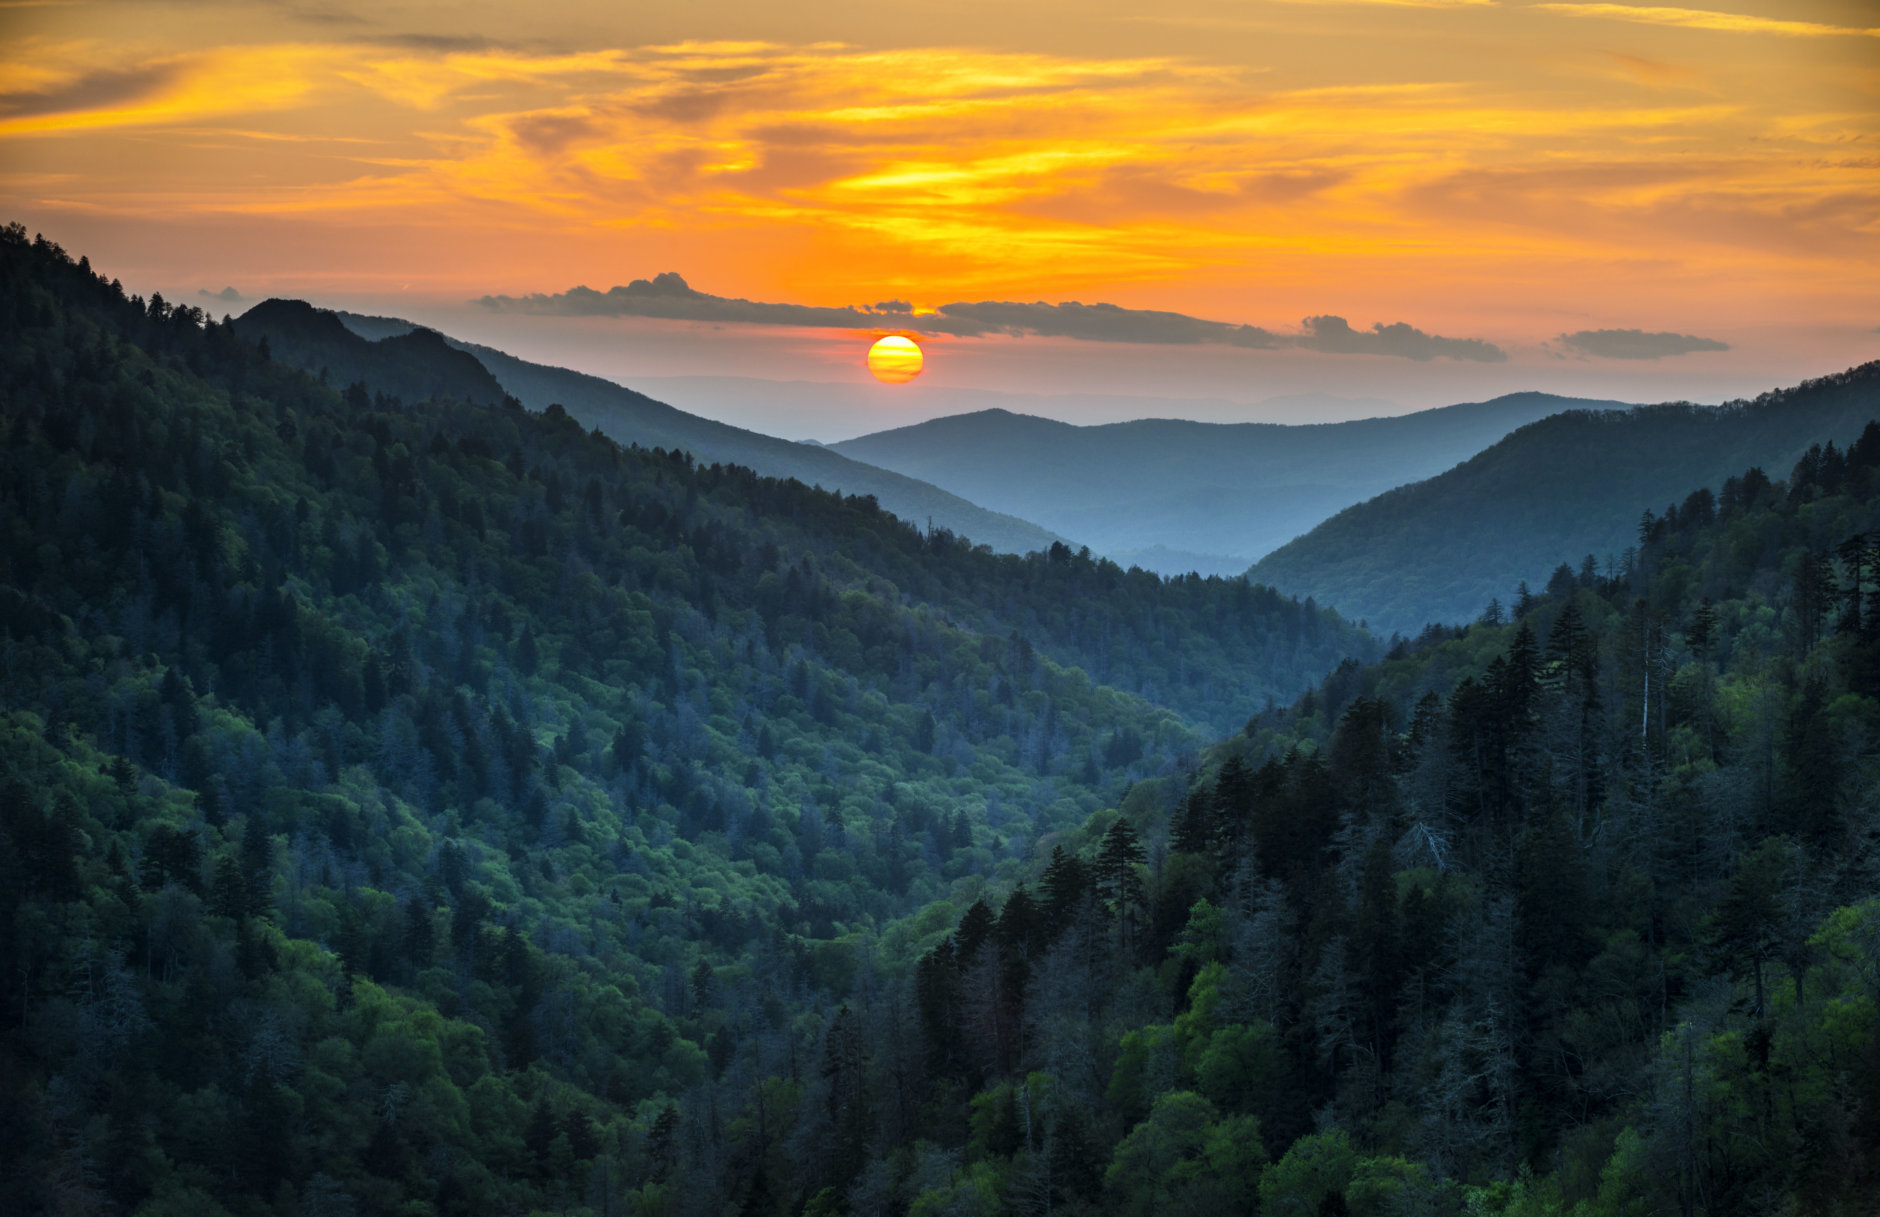 Gatlinburg TN Great Smoky Mountains National Park Scenic Sunset Landscape vacation getaway destination in the Smokies (Getty Images/iStockphoto/WerksMedia)